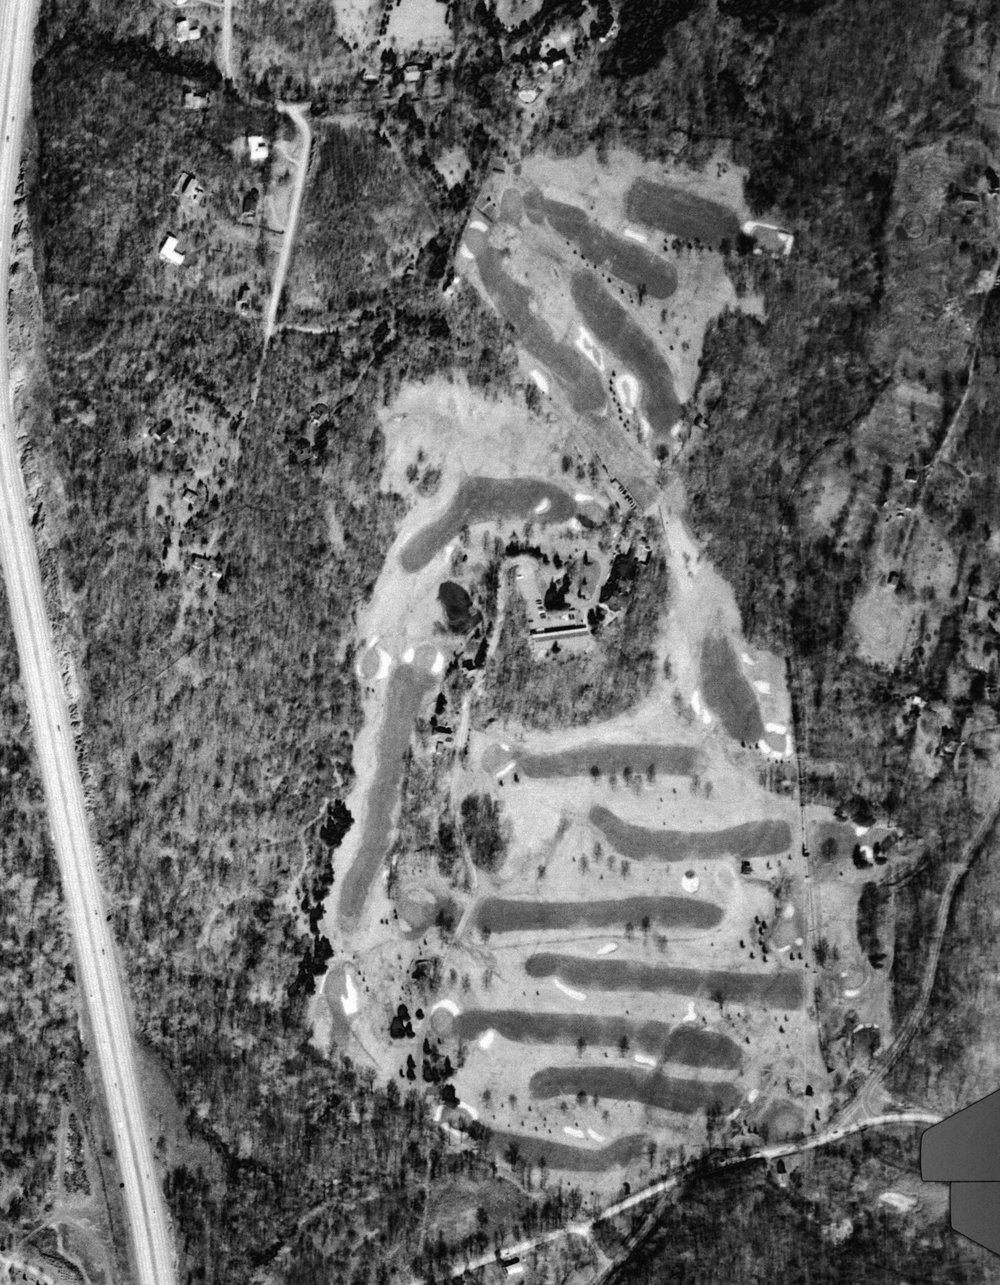 A 1965 Aerial which shows the golf course before Nicklaus renovation.